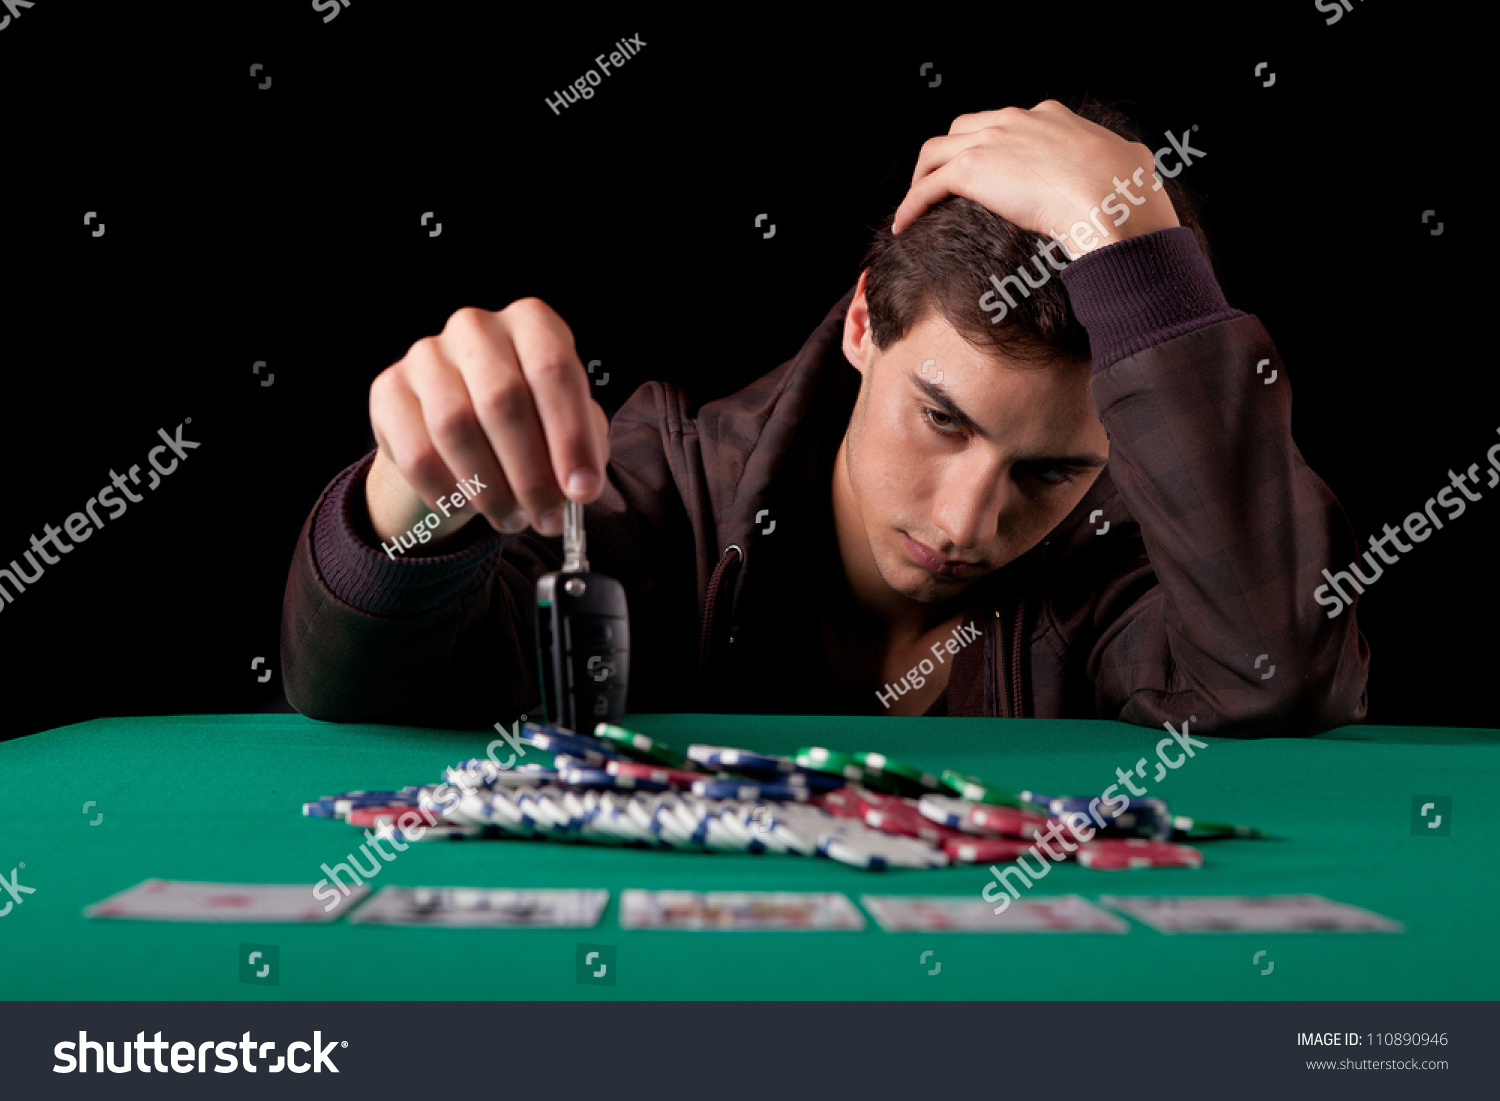 Hold gambling gambling devices for cheating